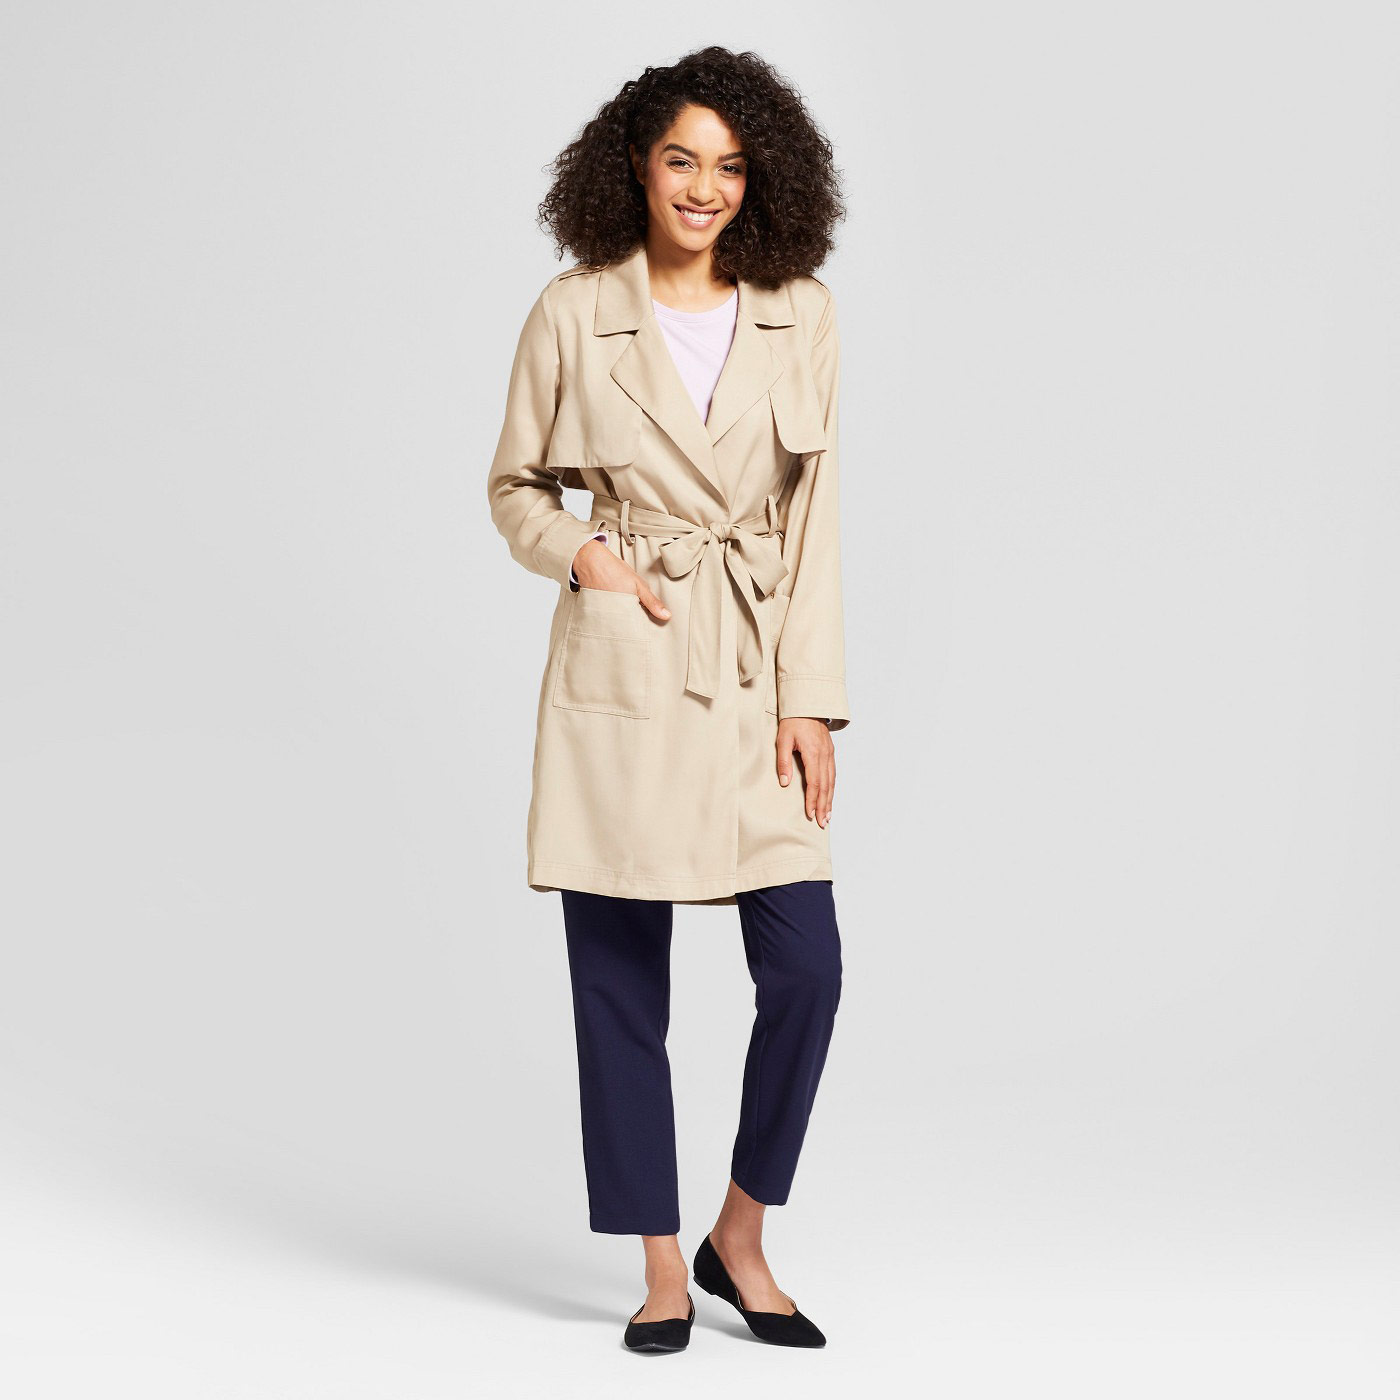 A New Day Tan Women's Trench Coat